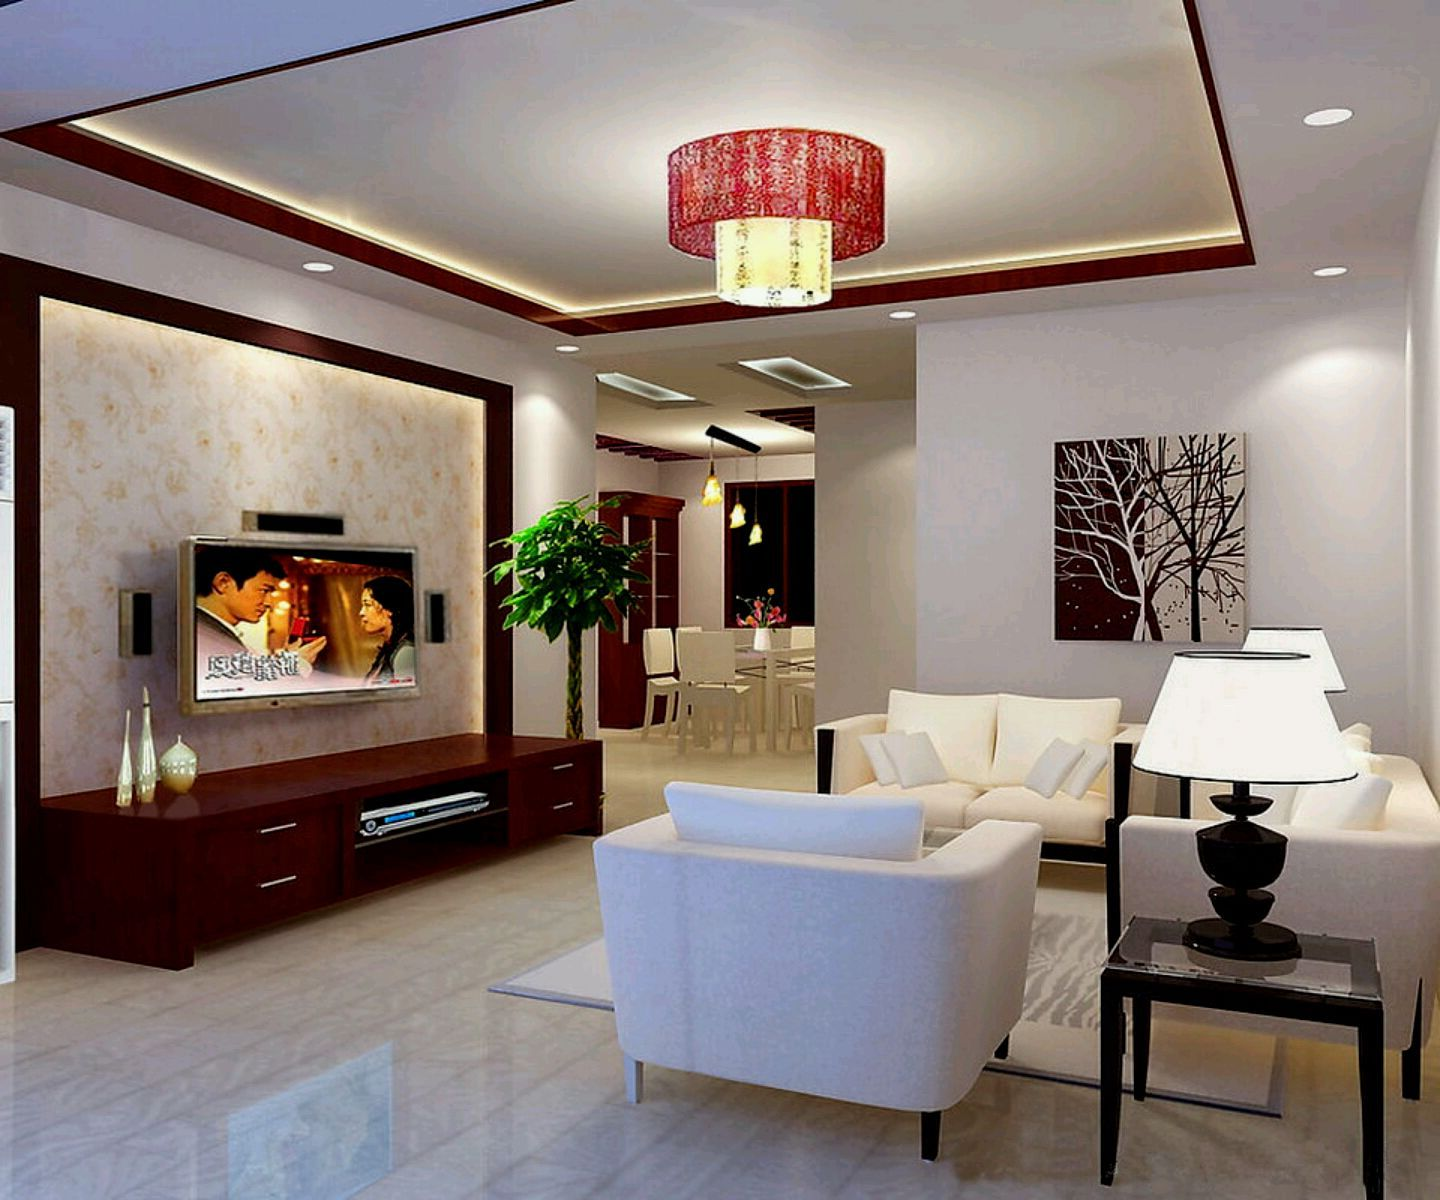 Ceilingdesignfordrawingroominpakistanceilingdesignsfor Captivating Ceiling Designs For Living Rooms Design Inspiration